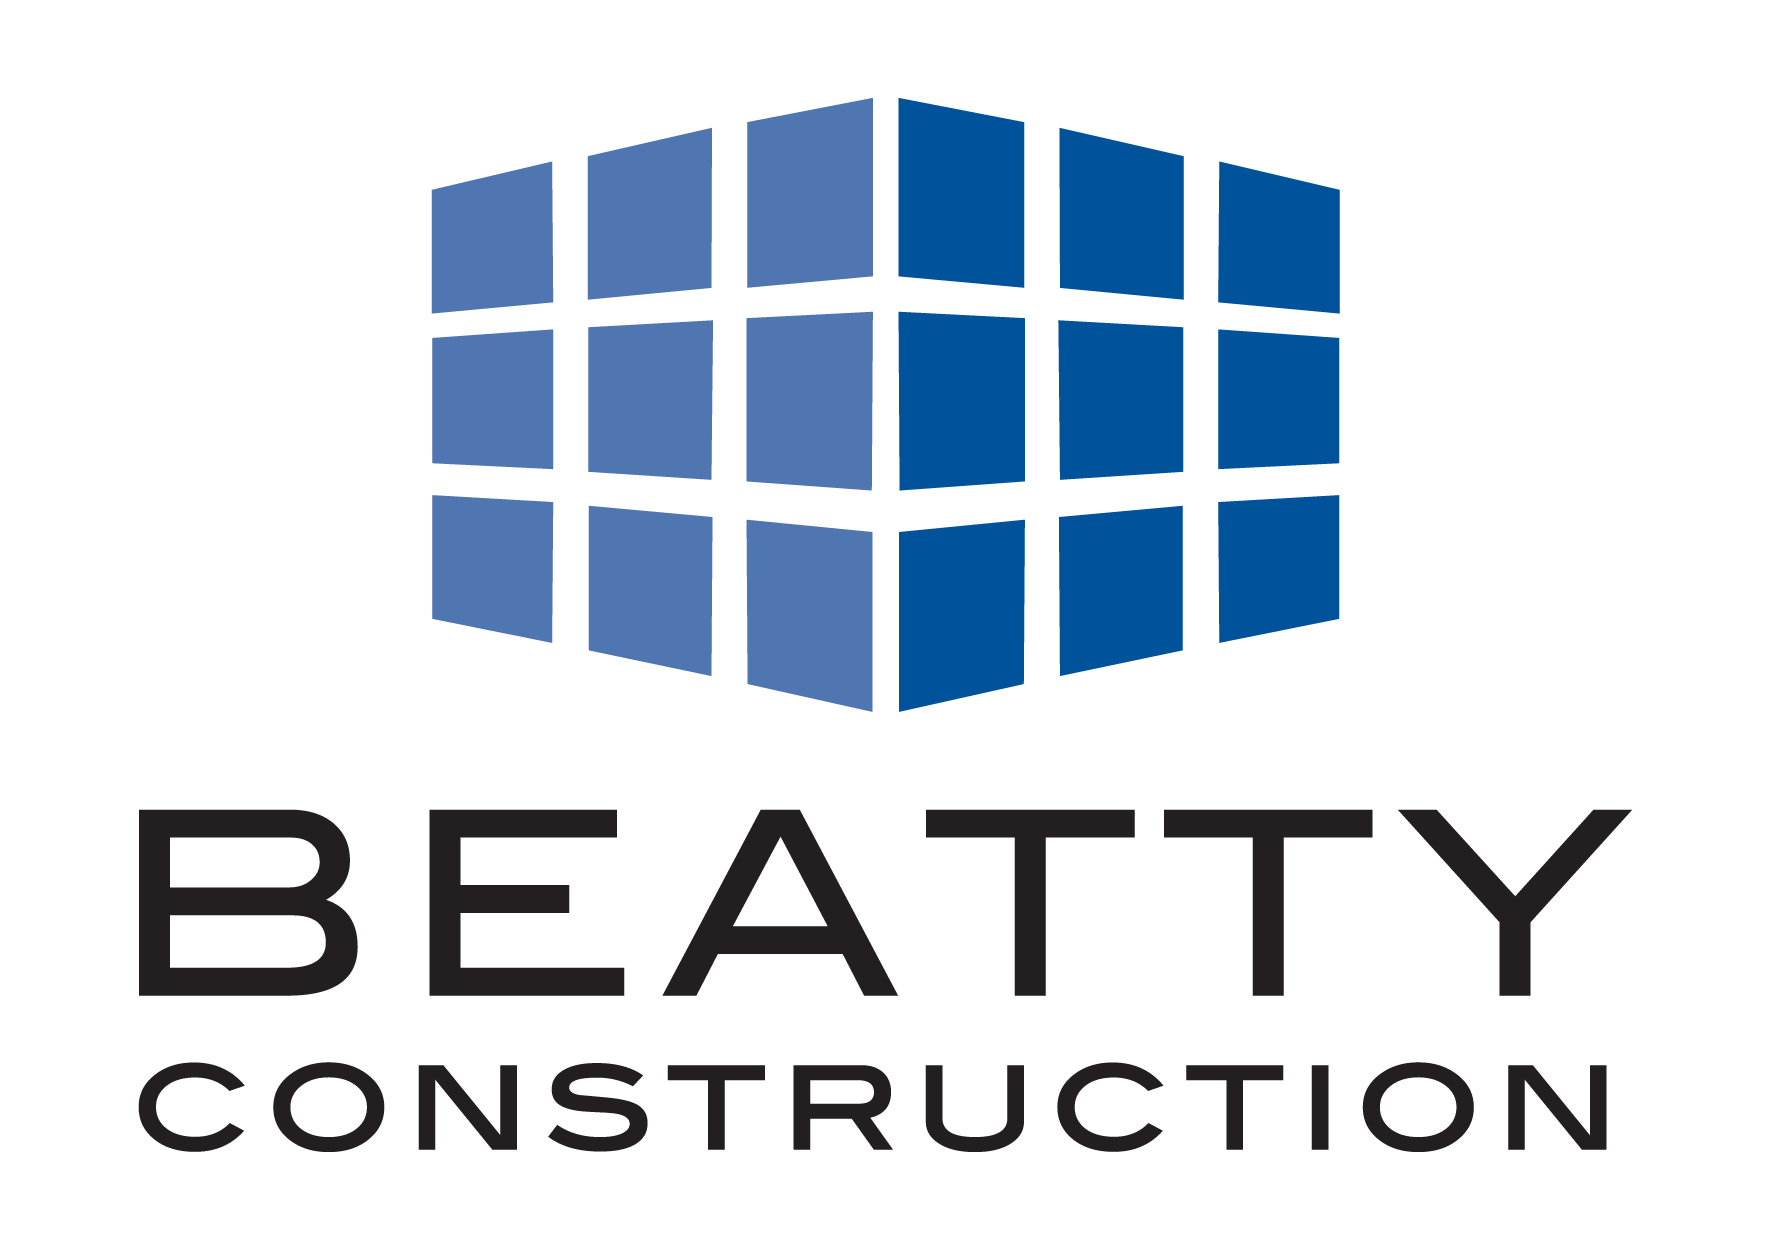 Beatty Construction